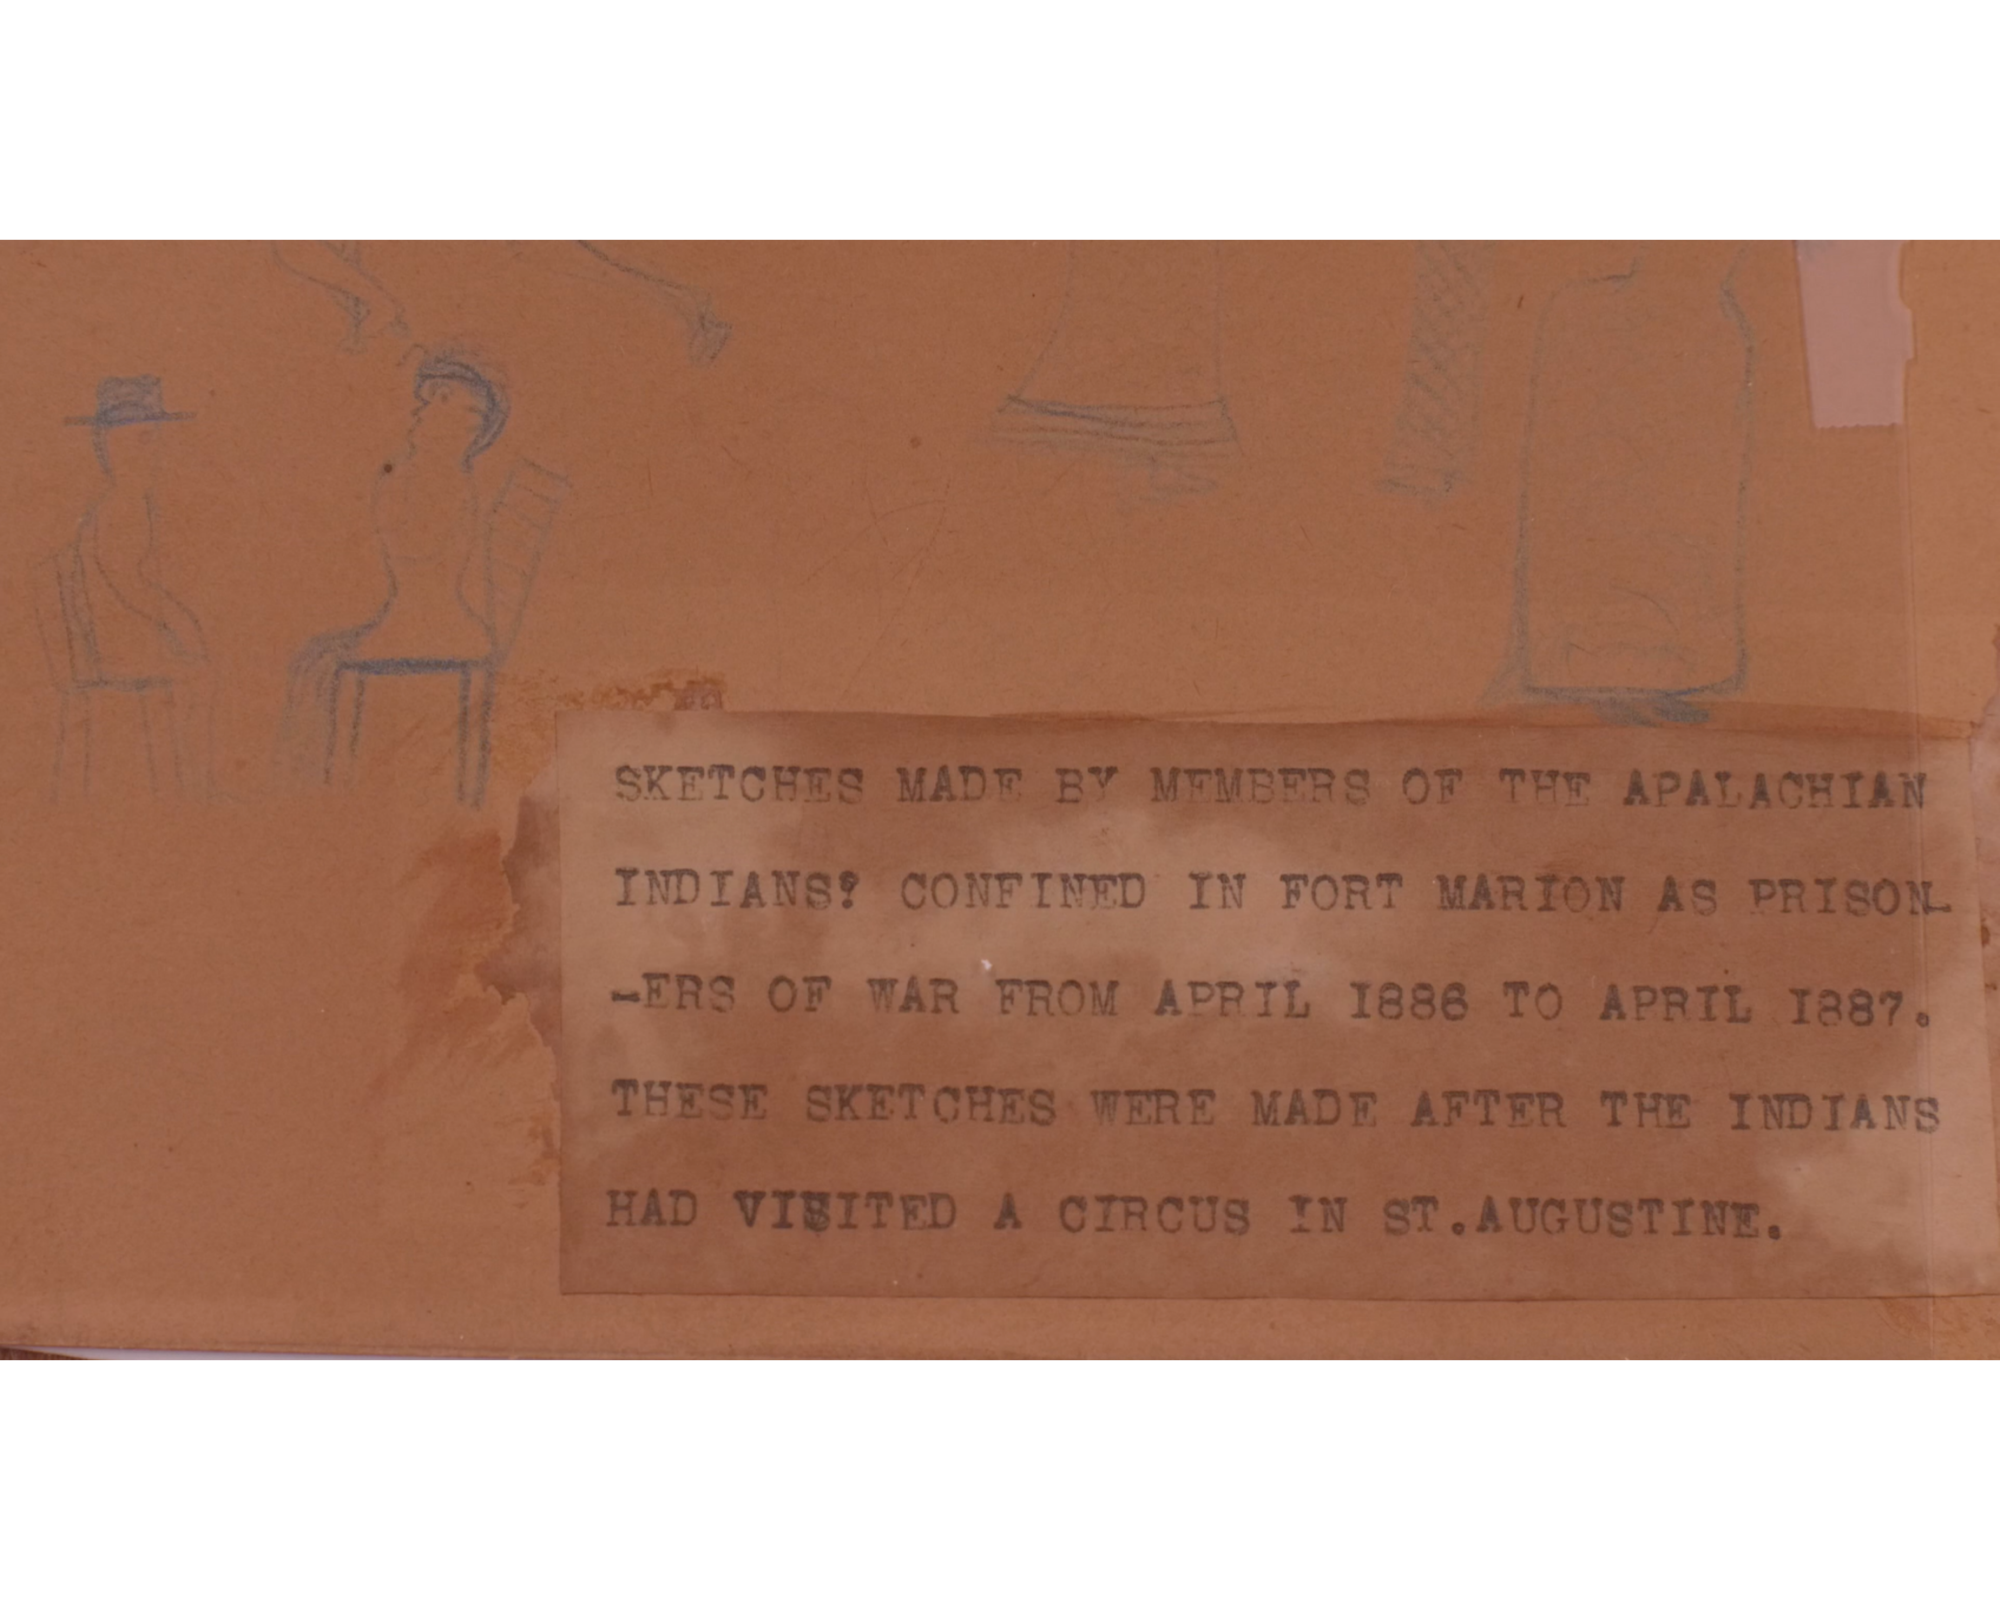 "Brown paper with sketch of two people seated at a table on the left with type-written text on right reading: ""SKETCHED MADE BY MEMBERS OF THE APALACHIAN [sic] INDIANS CONFINED IN FORT MARION AS PRISONERS OF WAR FROM APRIL 1886 TO APRIL 1887. THESE SKETCHES WERE MADE AFTER THE INDIANS HAD VISITED A CIRCUS IN ST. AUGUSTINE."""